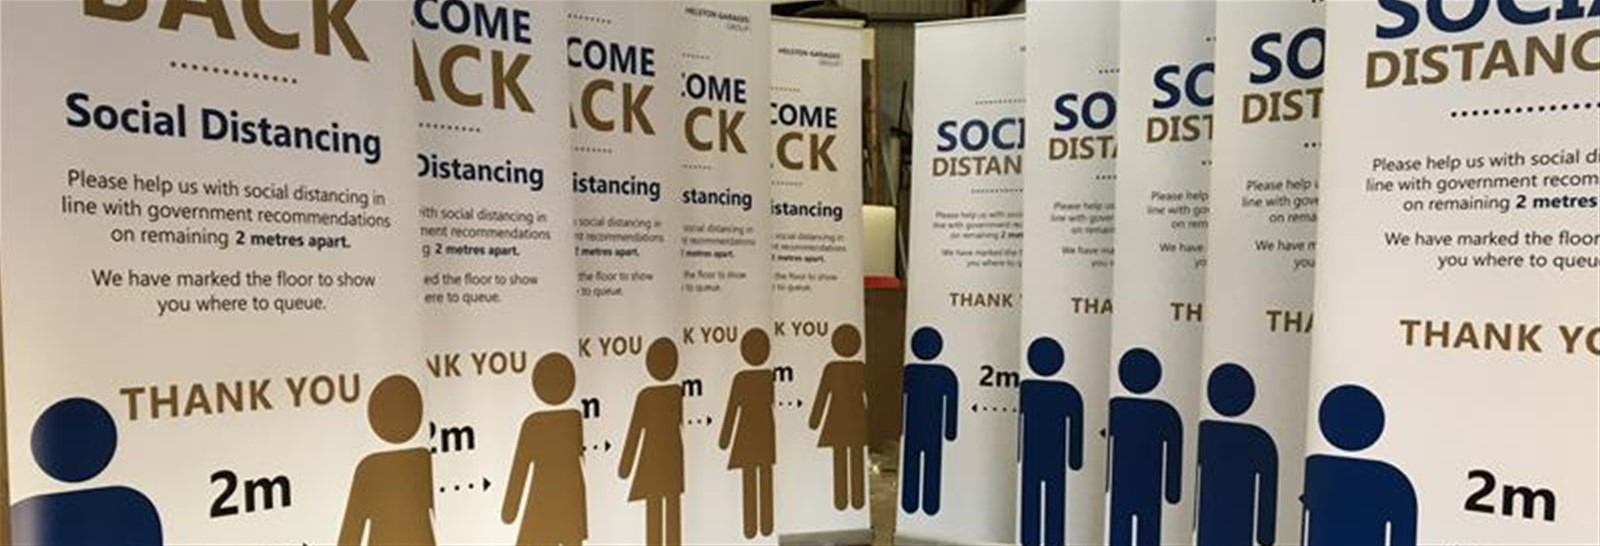 Roller banners with coronavirus messaging